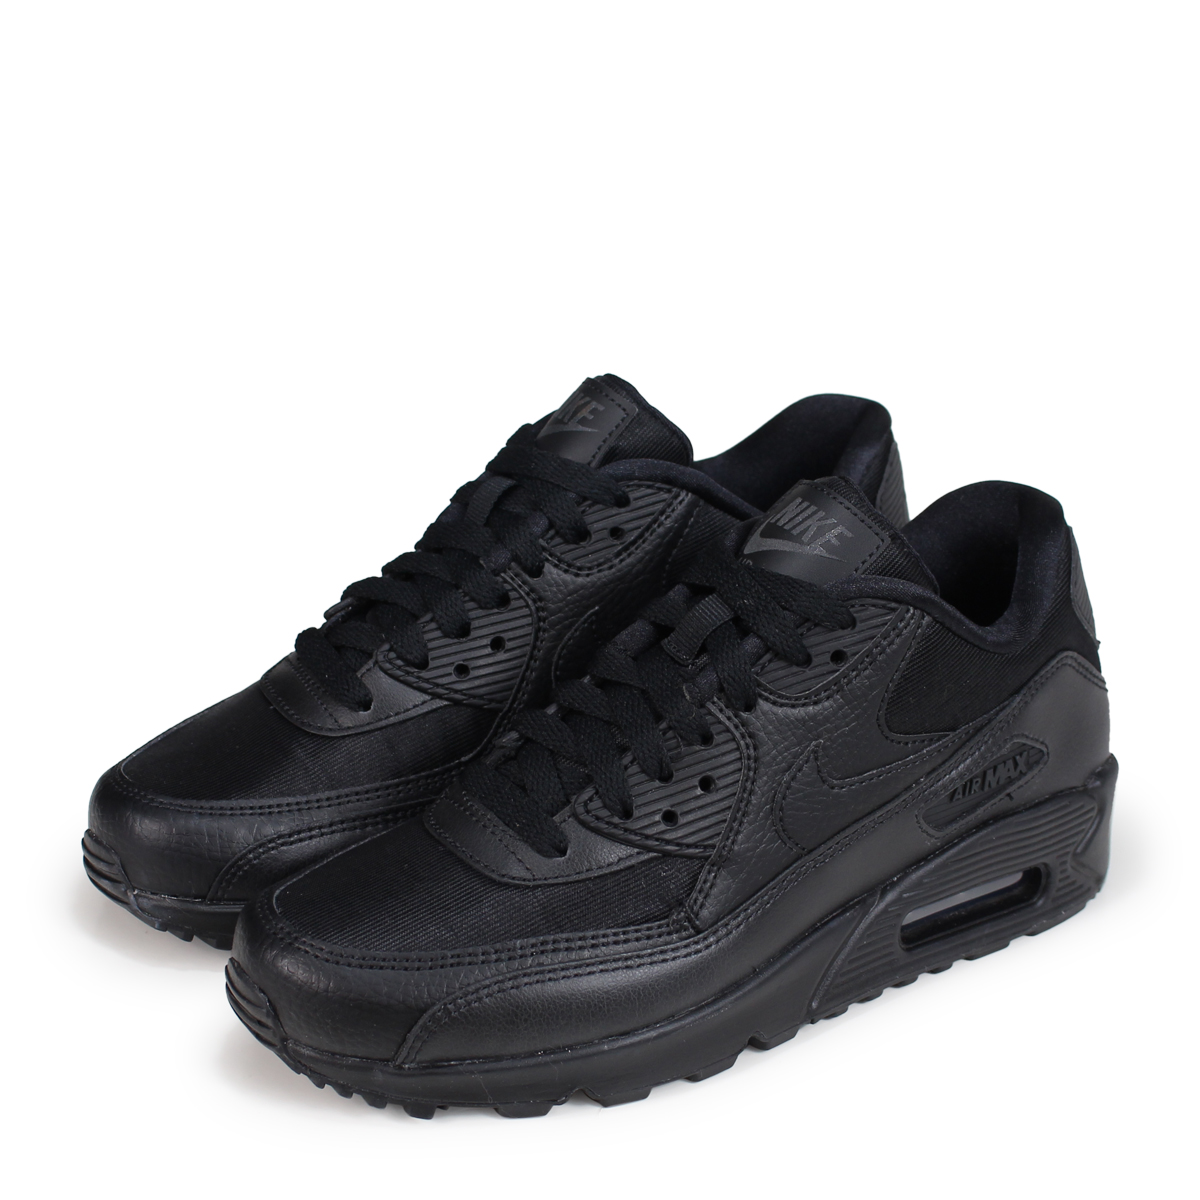 NIKE WMNS AIR MAX 90 Kie Ney AMAX 90 Lady's sneakers 325,213 057 black